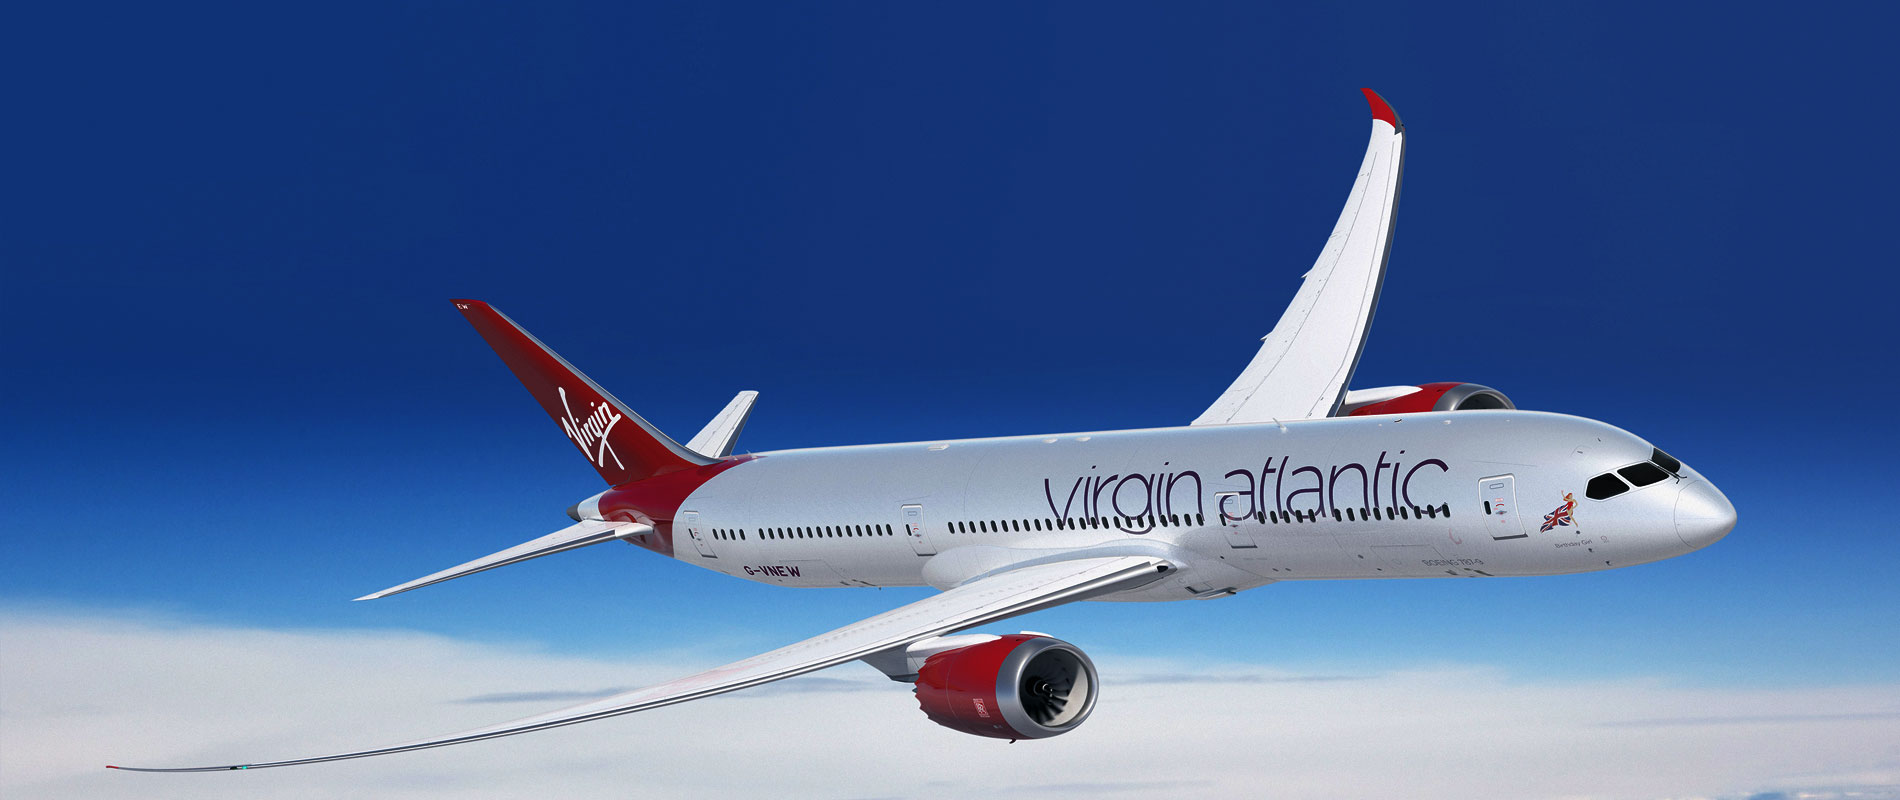 2018 Travel Destinations Cheap Virgin Atlantic Airlines Reservations Book Virgin